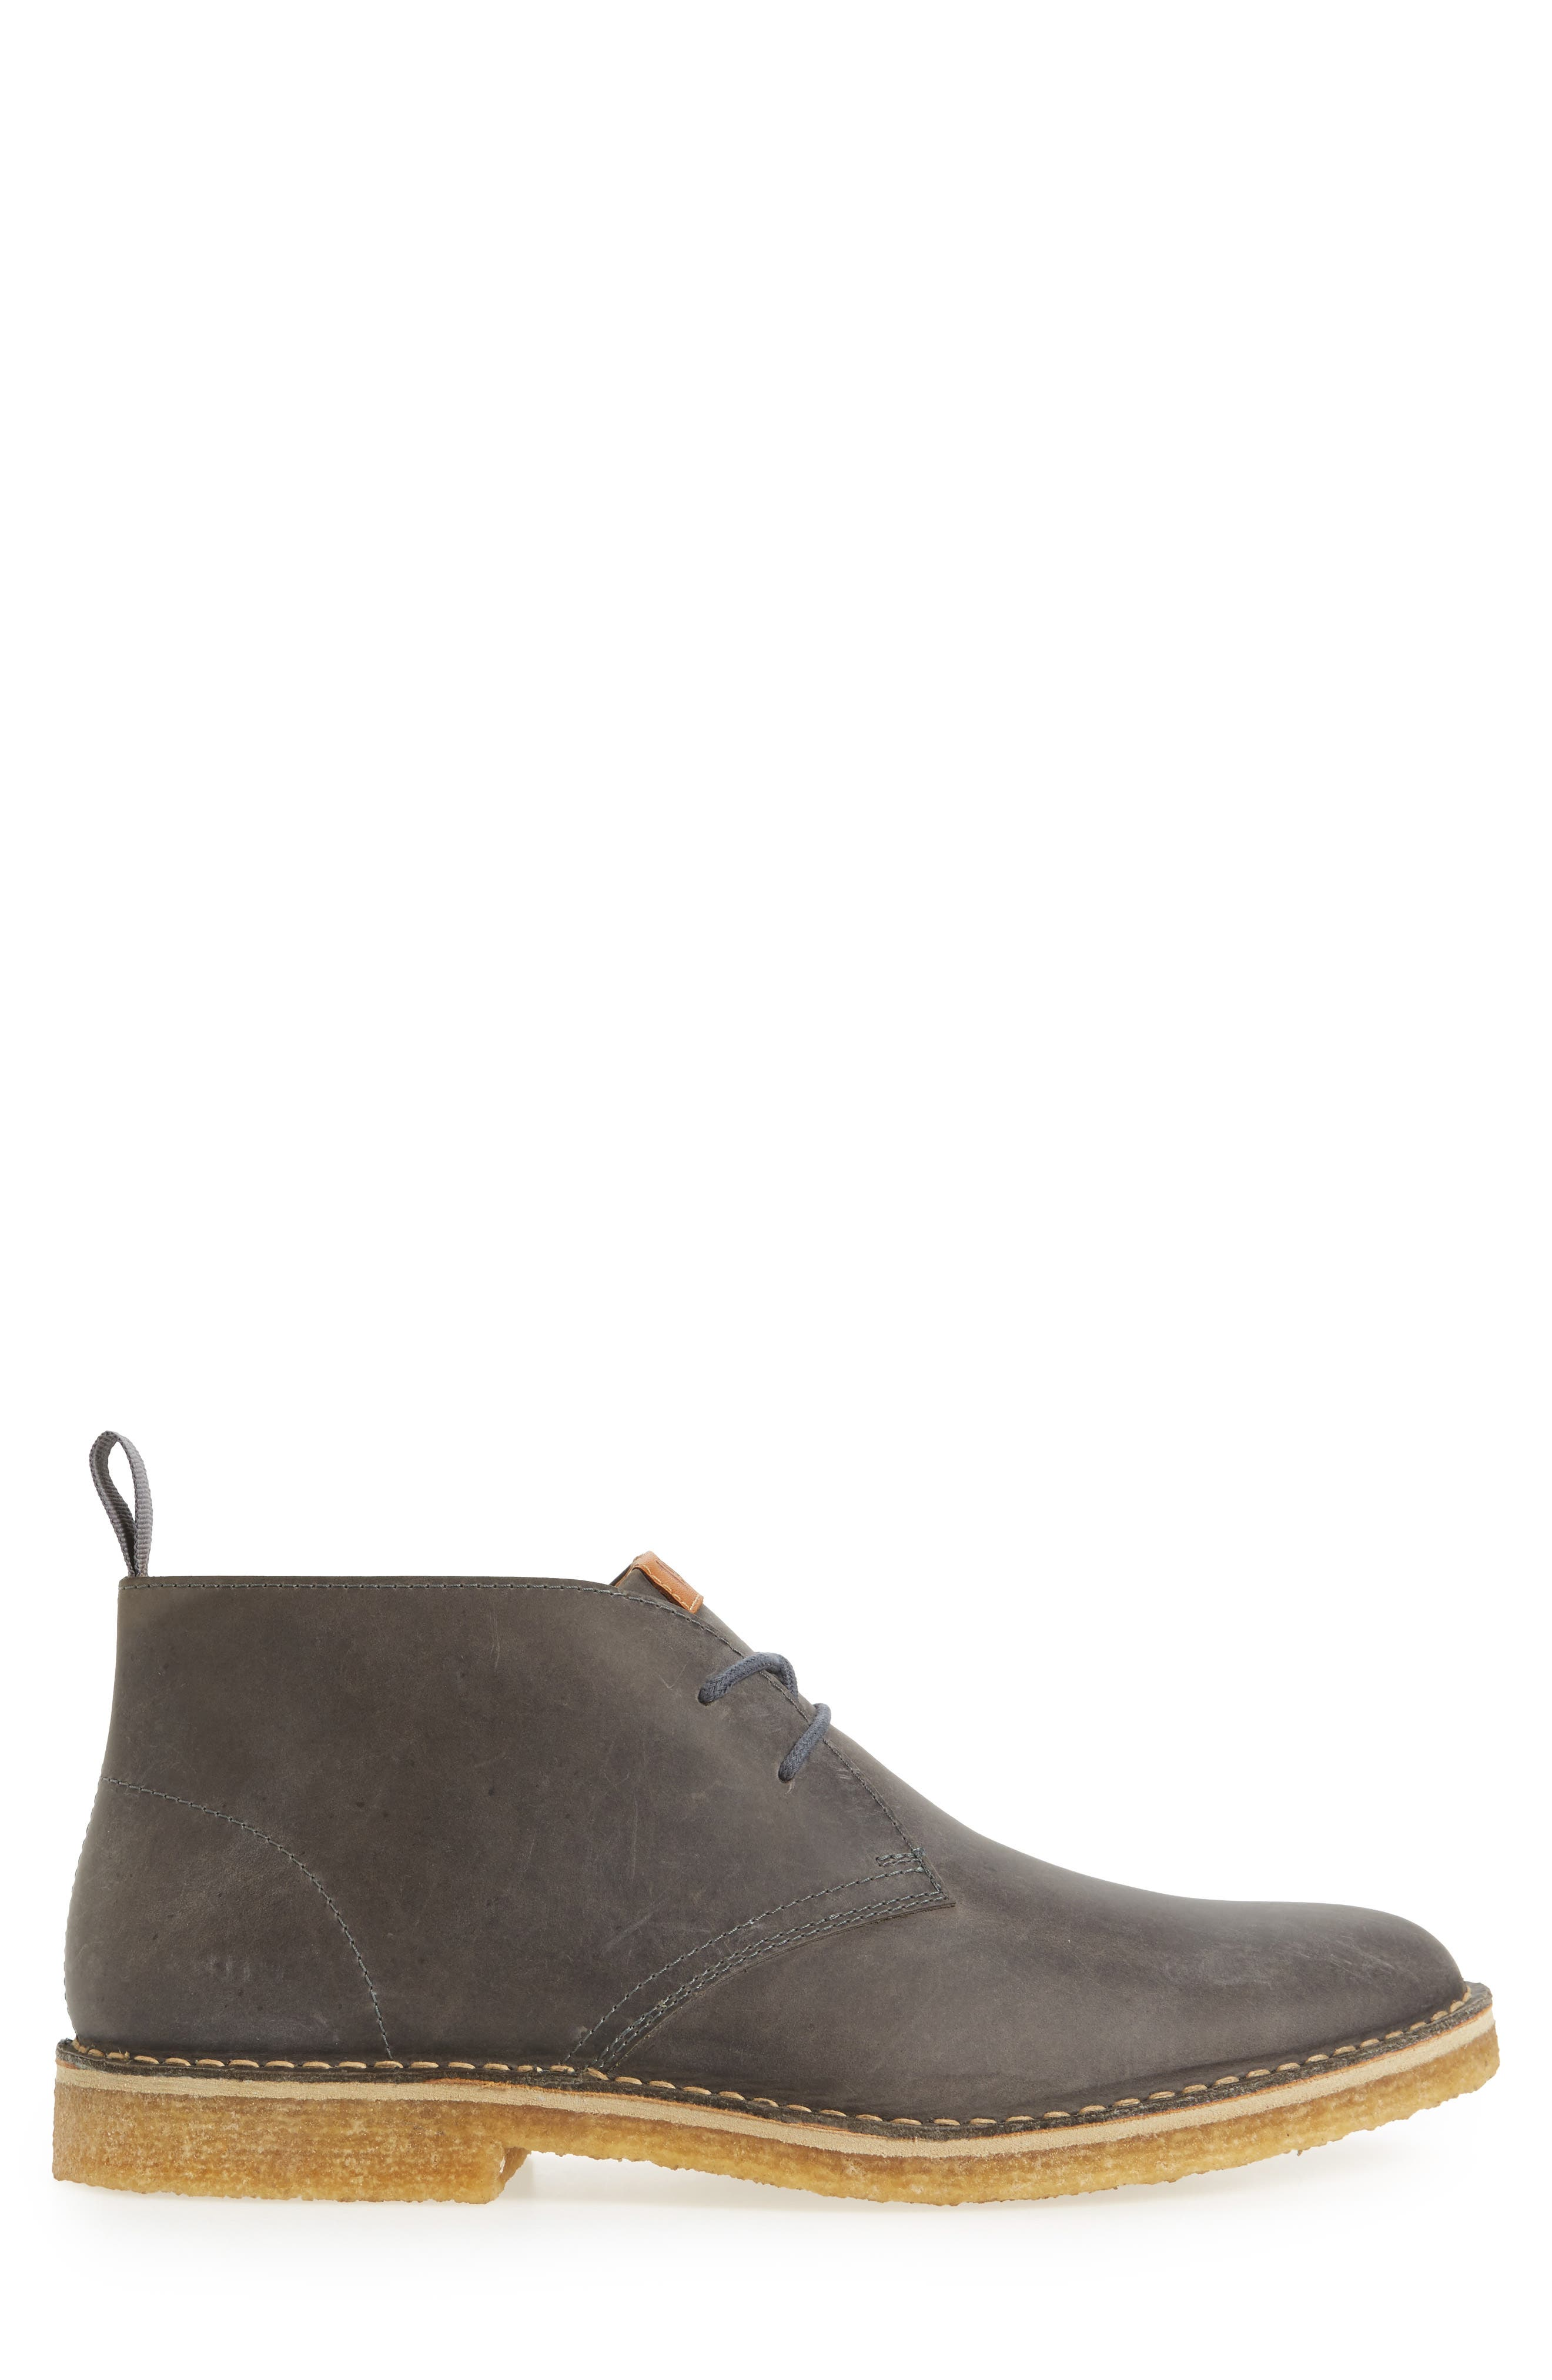 Westport Chukka Boot,                             Alternate thumbnail 3, color,                             020